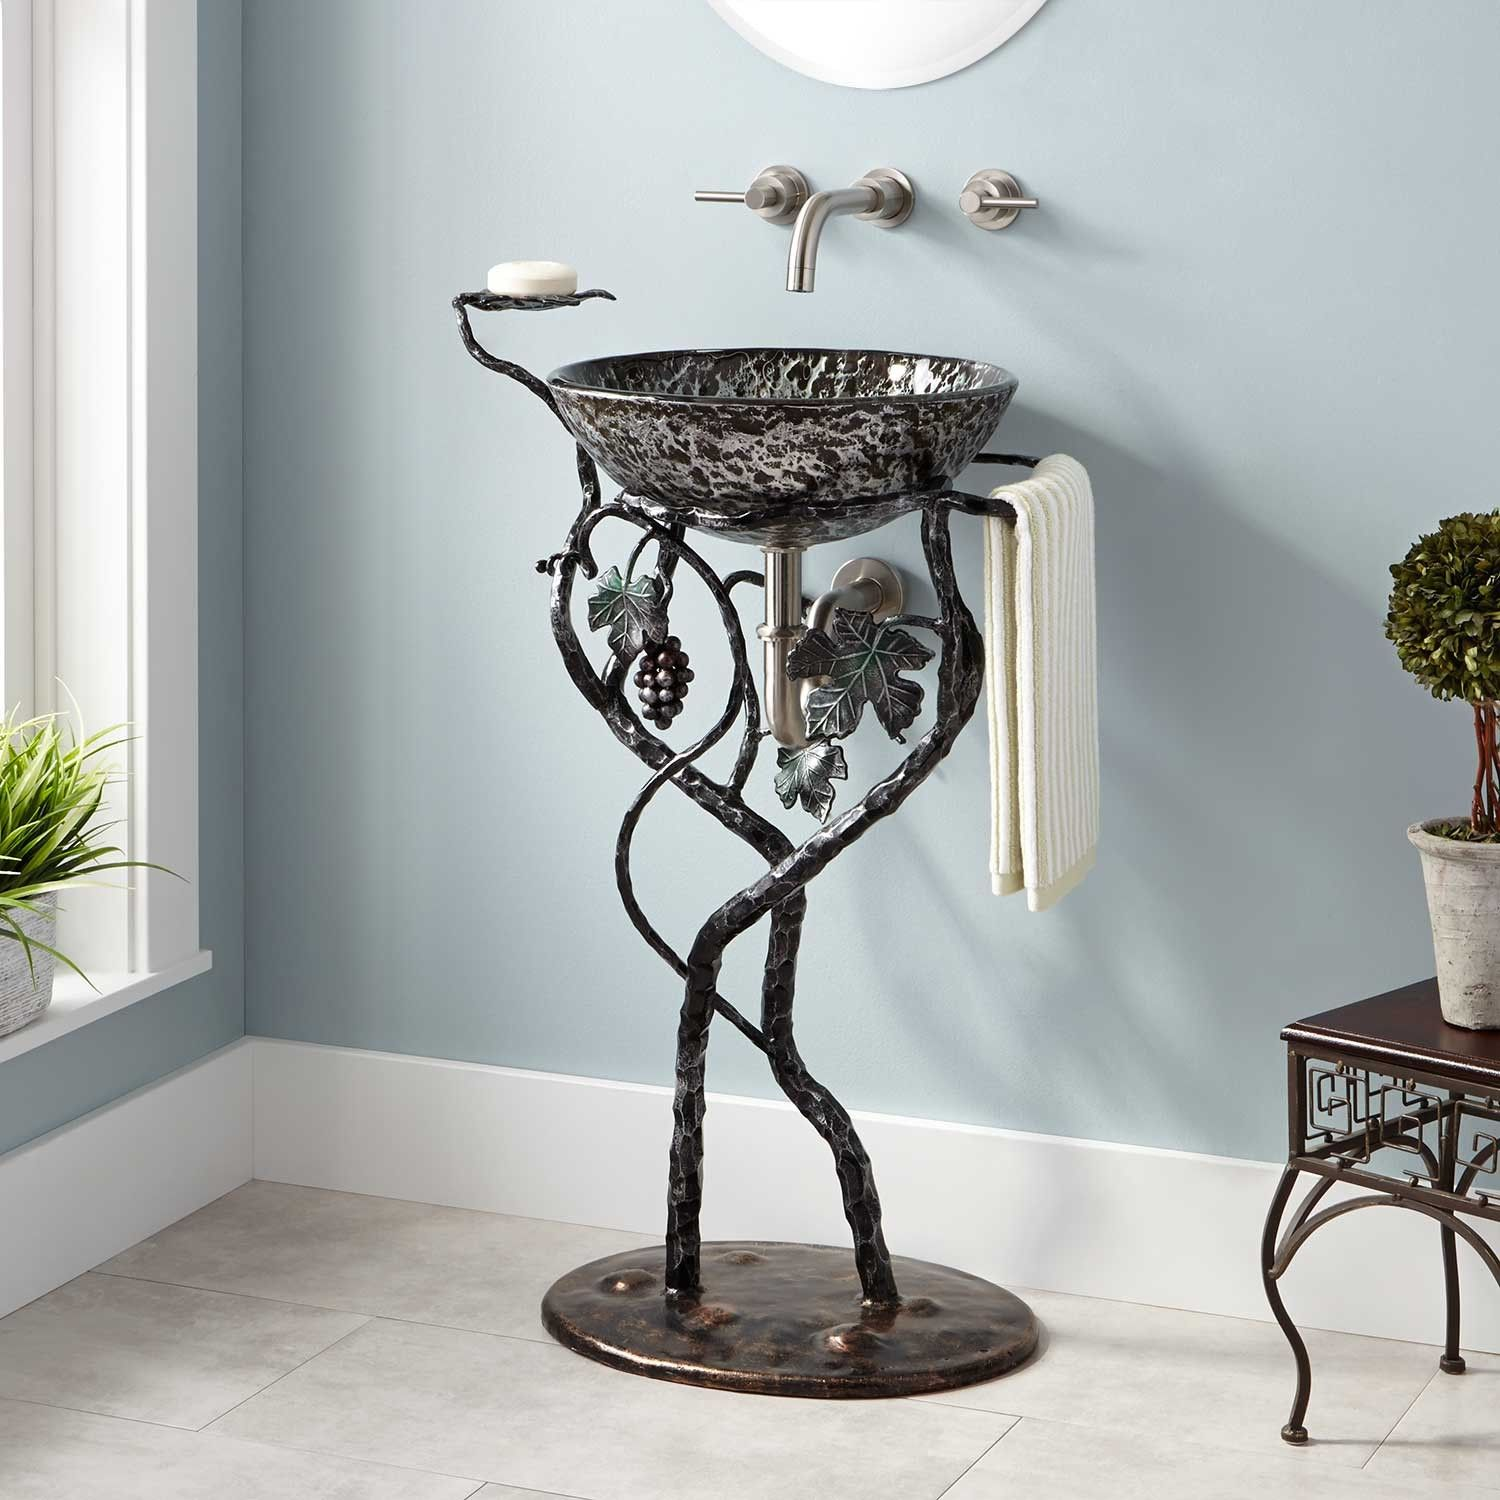 Grapevine wrought iron sink stangd gunmetal bring it together extras in 2019 wrought iron for Wrought iron bathroom furniture